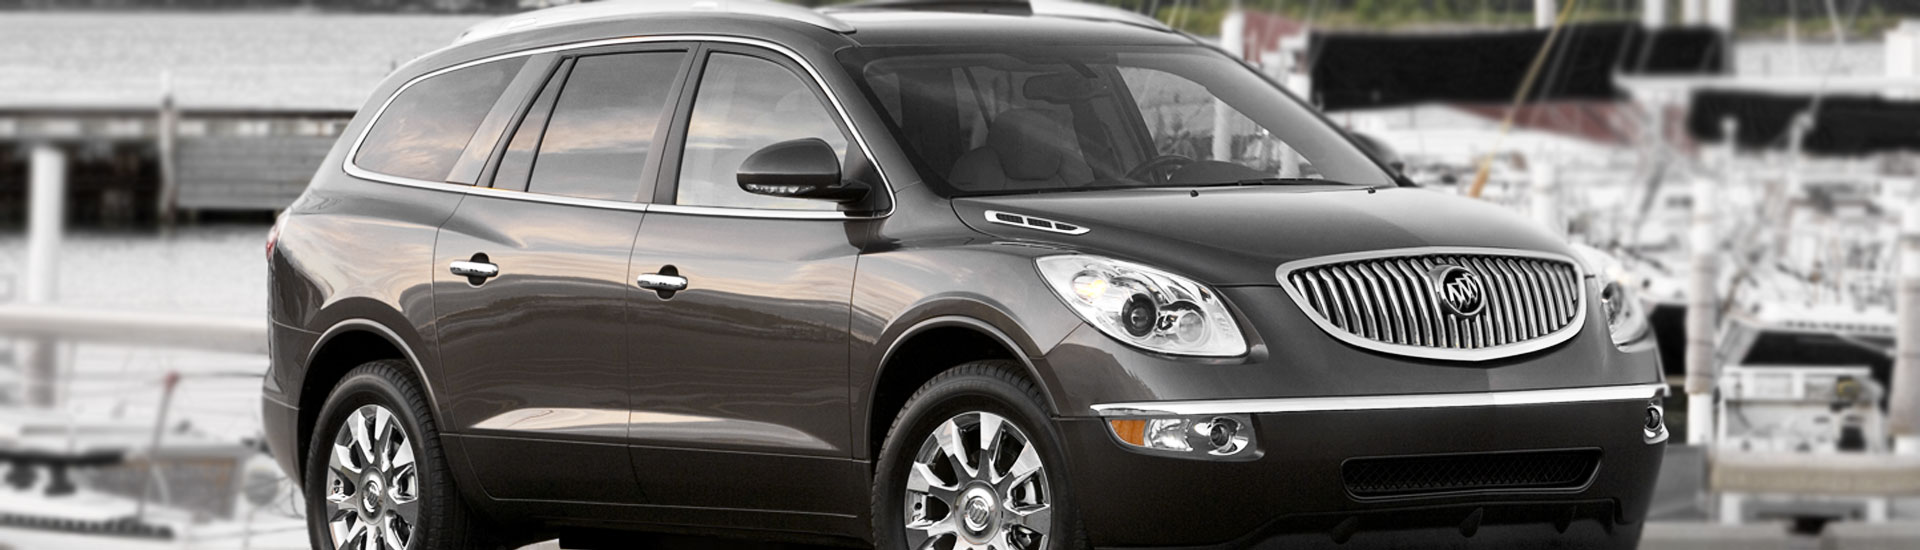 Buick Enclave Window Tint